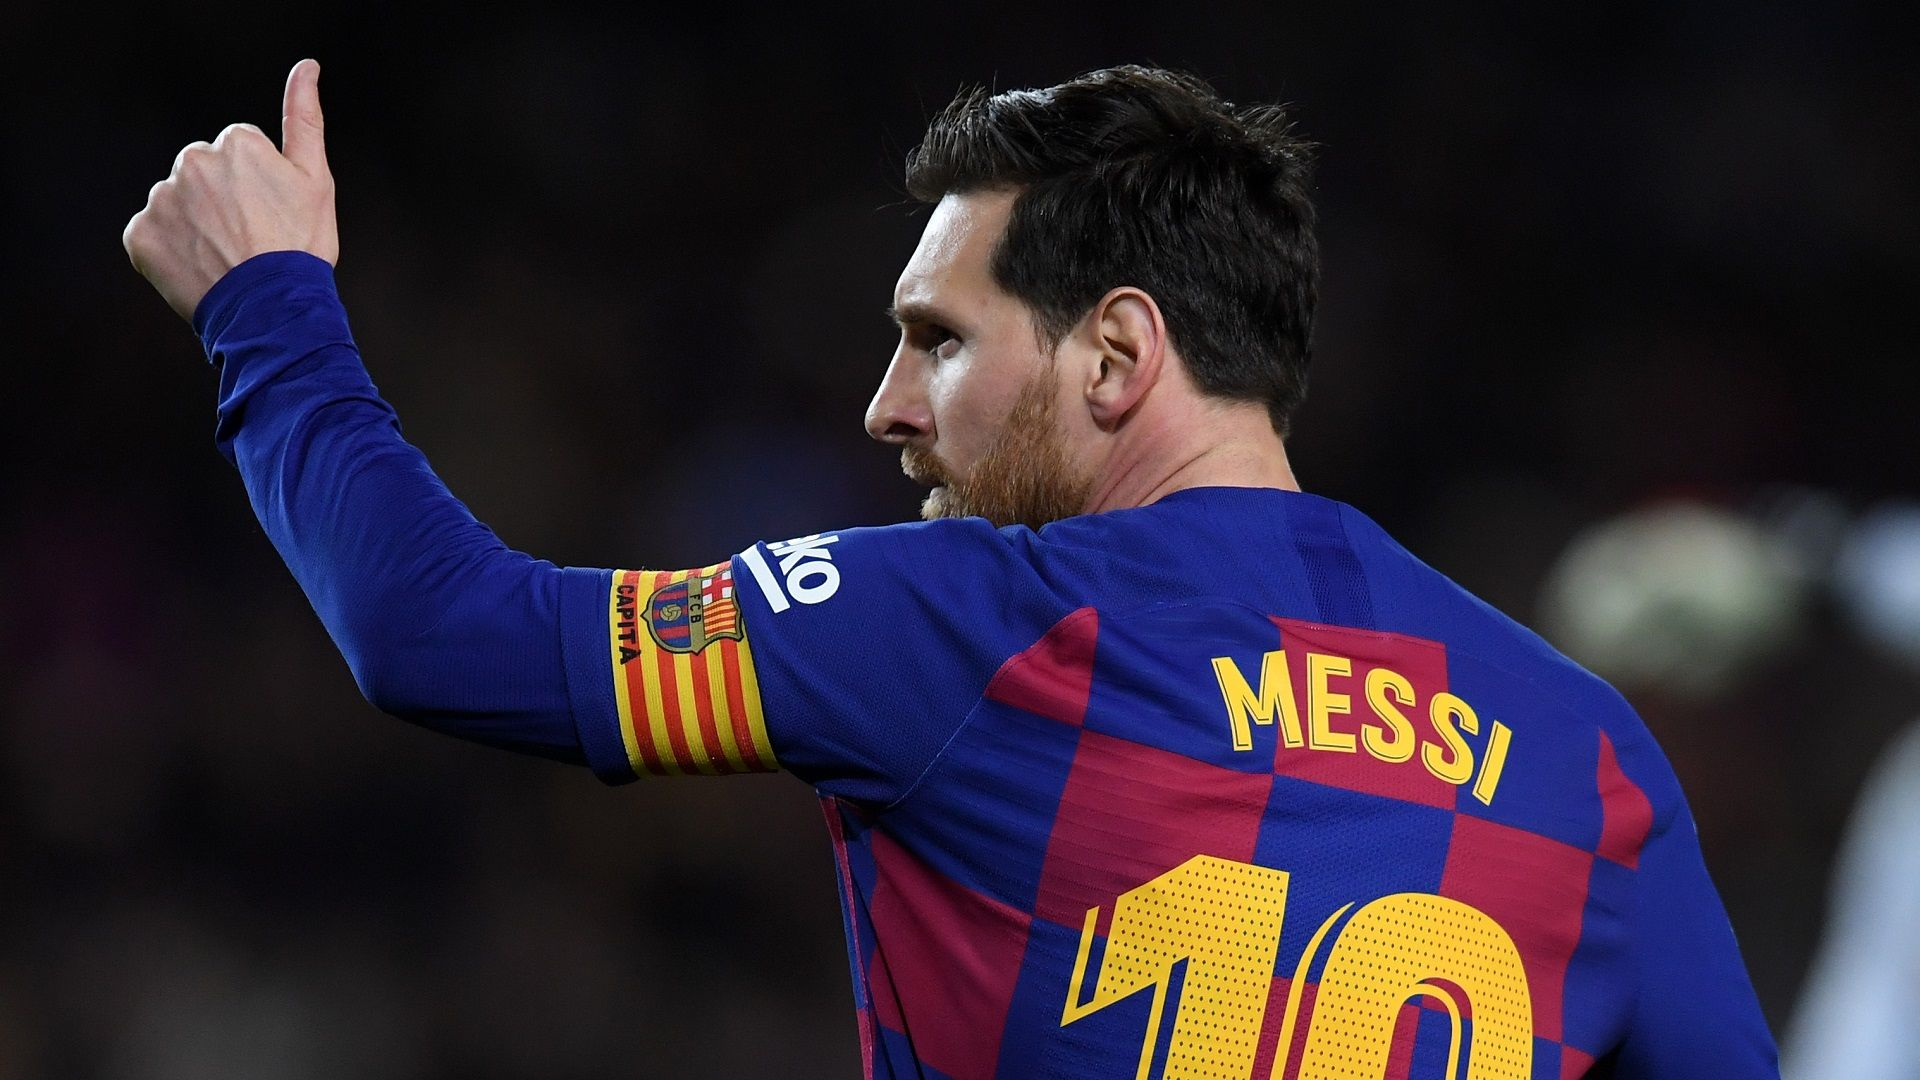 COVID-19: Messi donates one million euros to Barcelona hospital